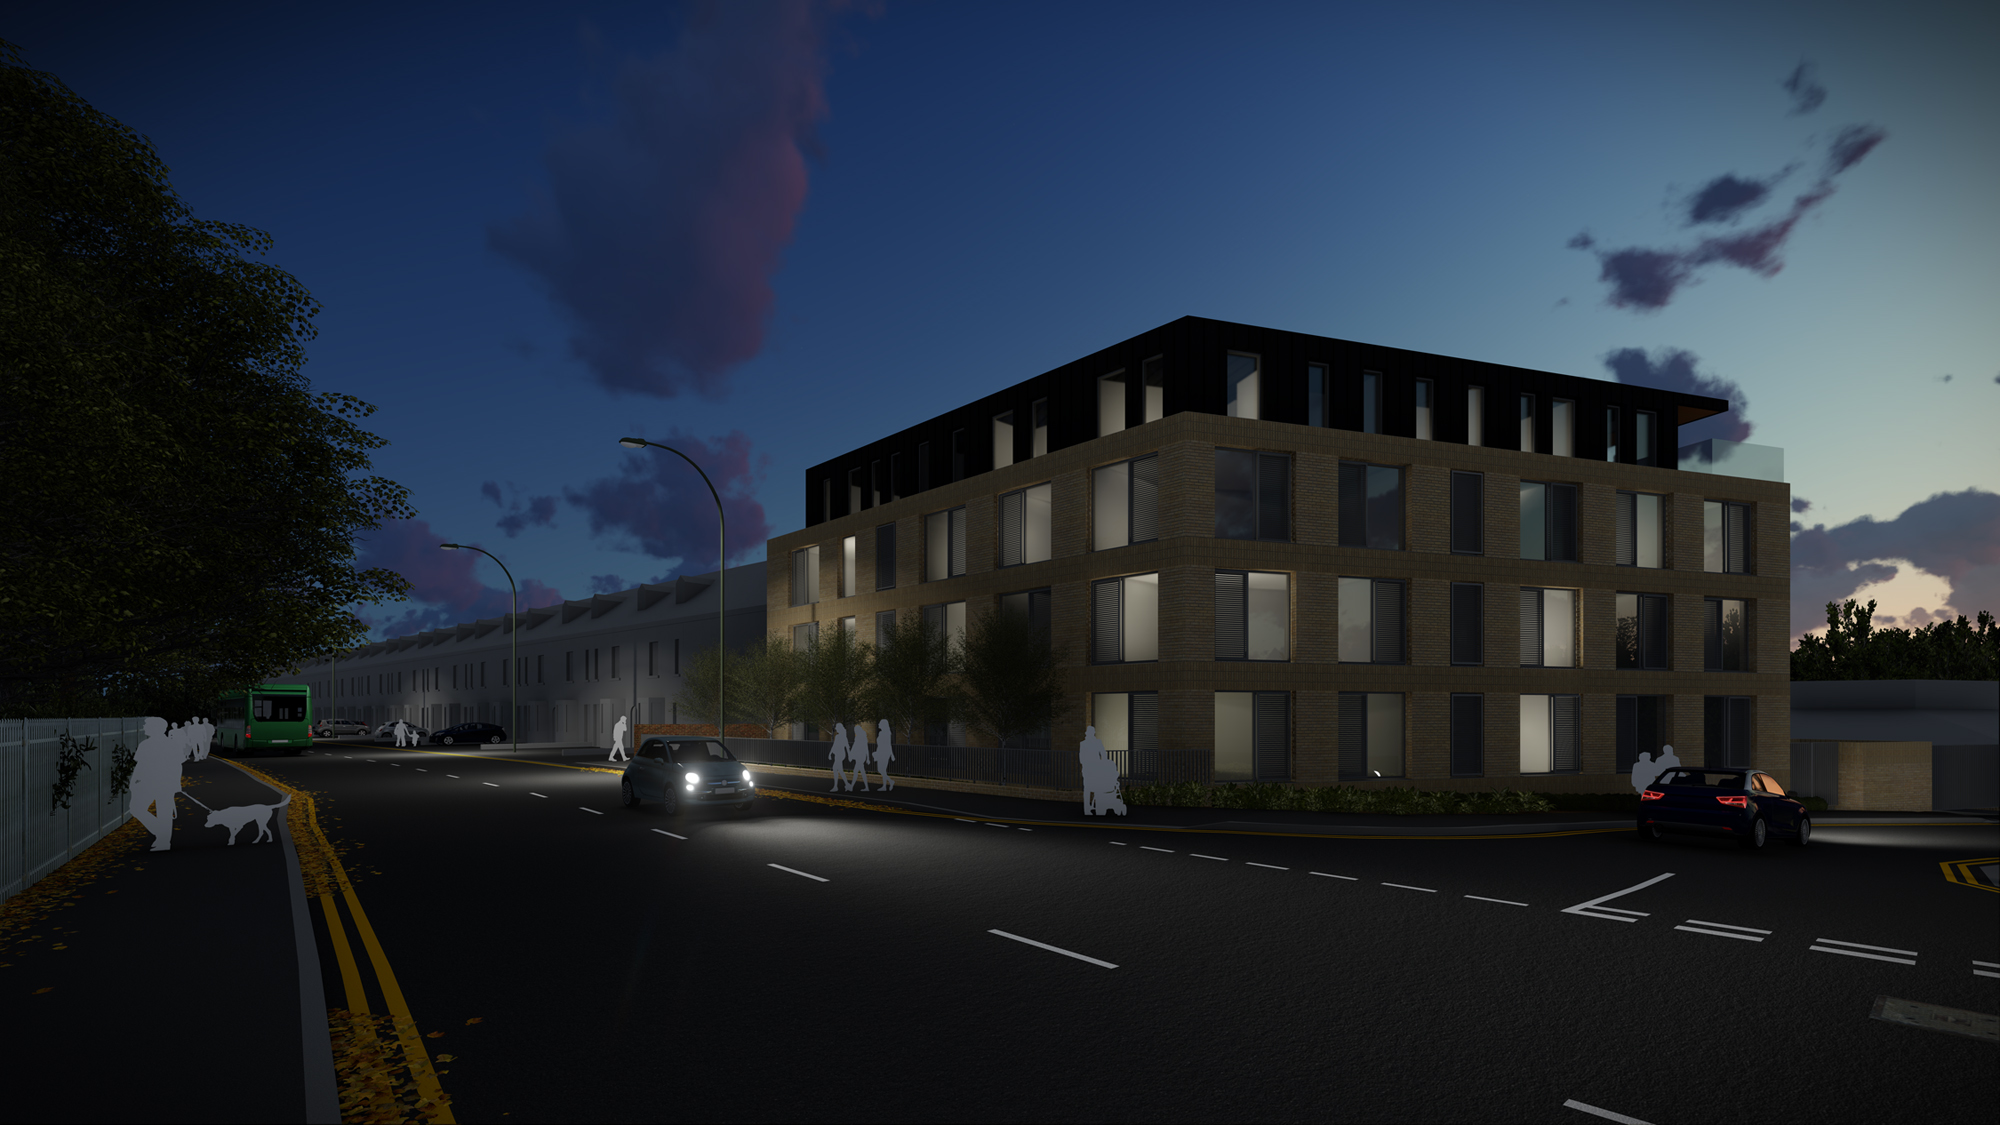 Kedleston Road Apartments Night